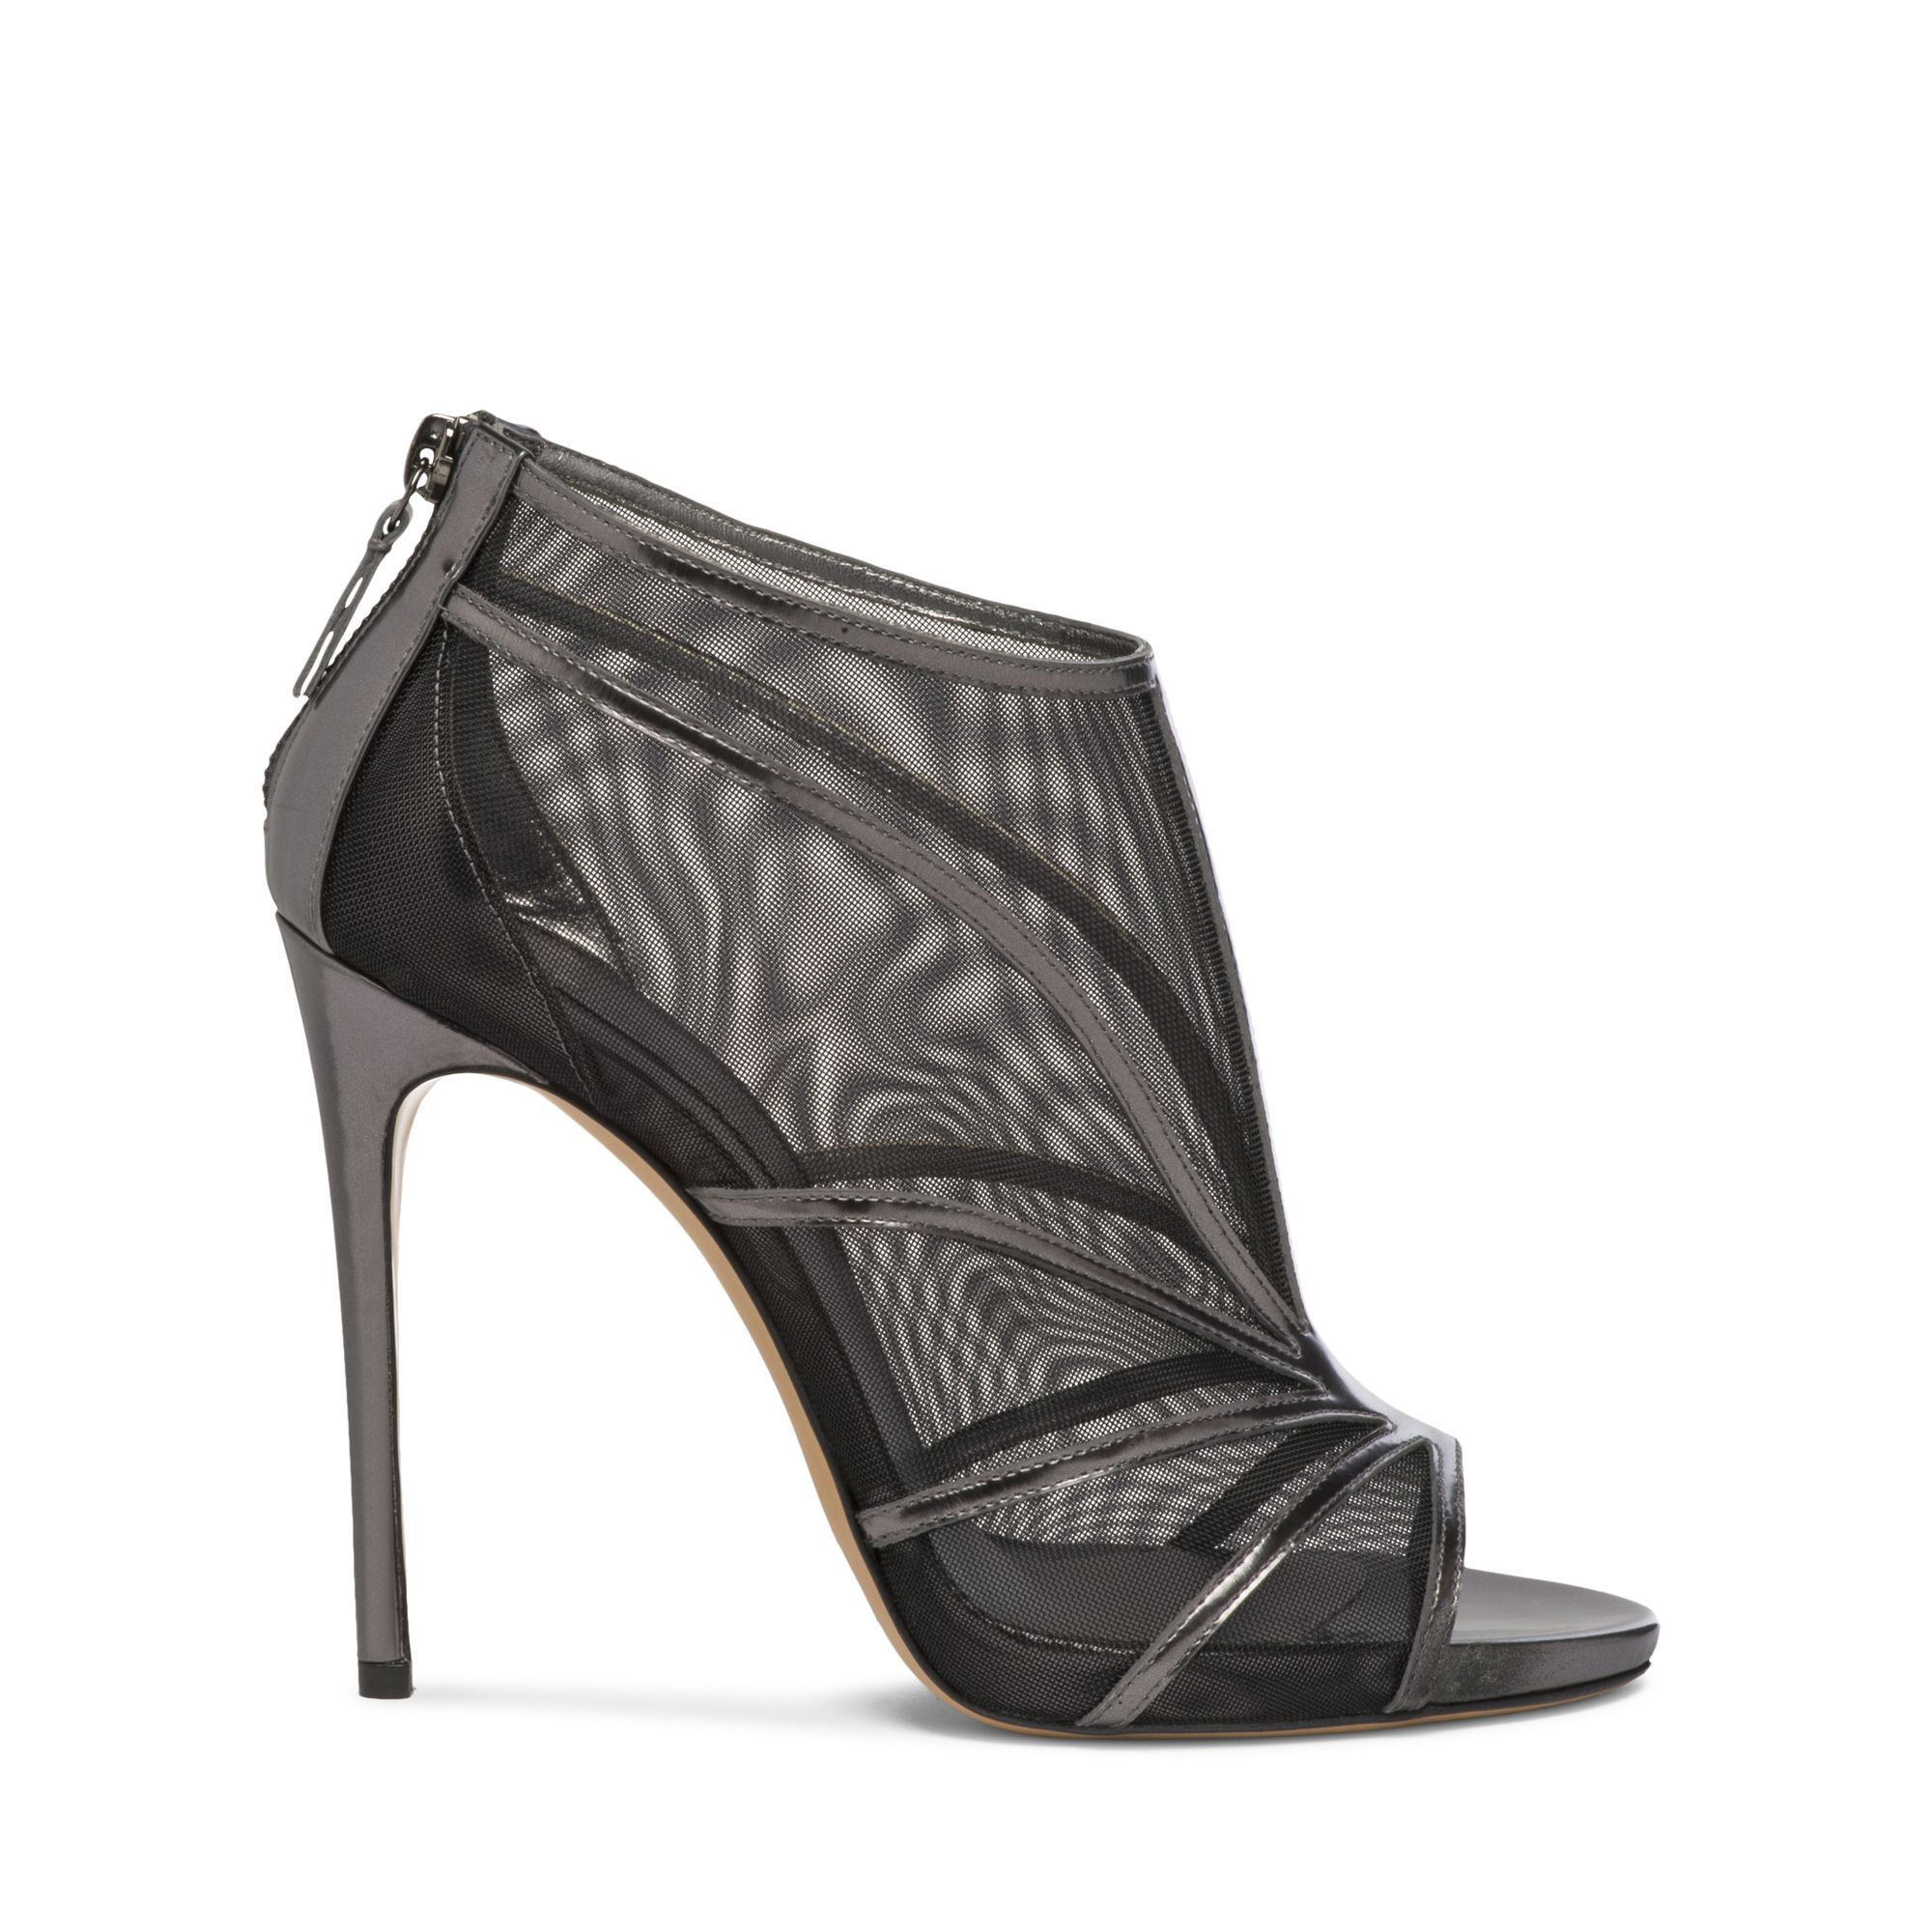 EVENING casadei #casadeiworld Nude-look sandal with black mesh panels and narrow zinc laminated mirrored-leather. Stiletto leather covered heel. 3.9 inches with a 0.4 inches concealed plateau. Laminated Mirrored-Leather, Mesh Made in Italy